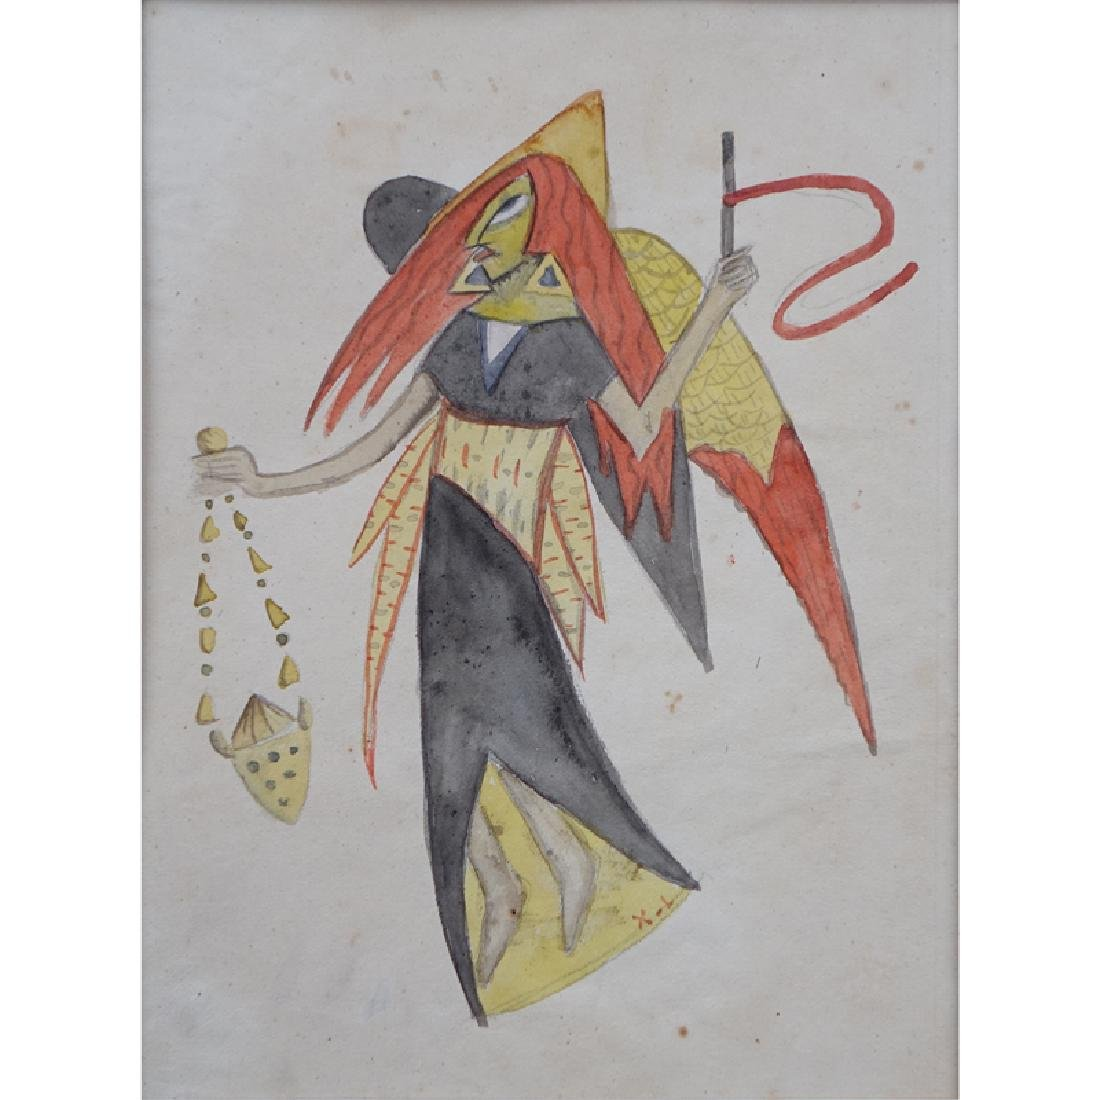 Attributed to: Xul Solar, Argentinian (1887 - 1963)